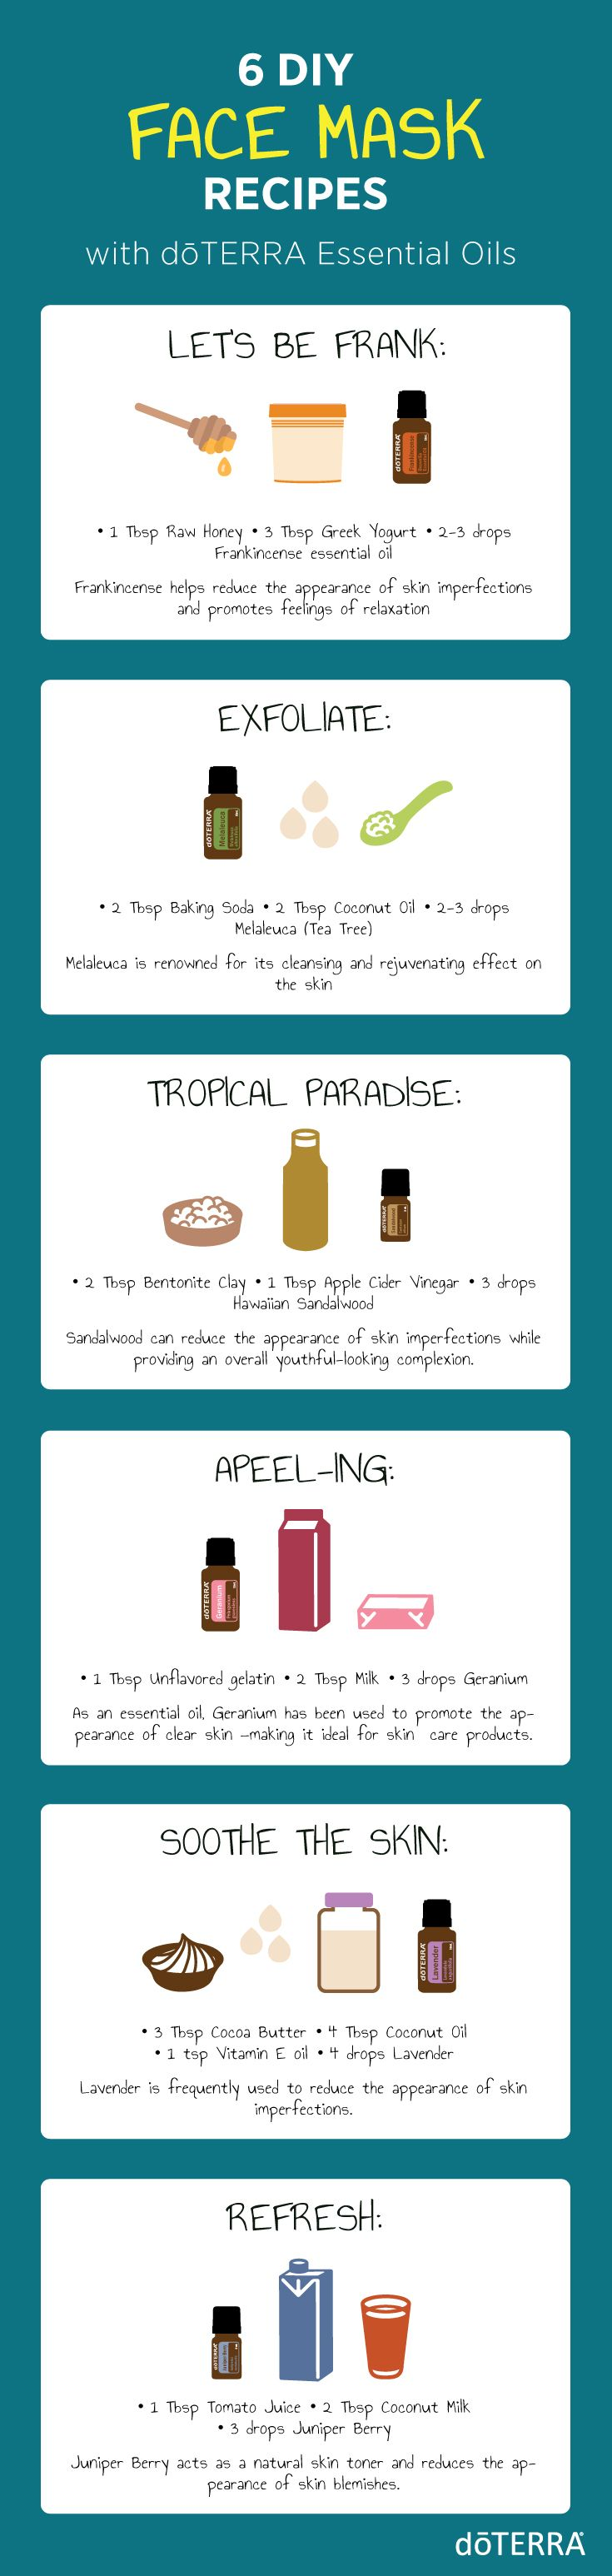 Are you ready for a girl's night? These DIY Natural Face Masks are perfect for a relaxing night in. Each different mask has amazing benefits that you'll want to get in on now!